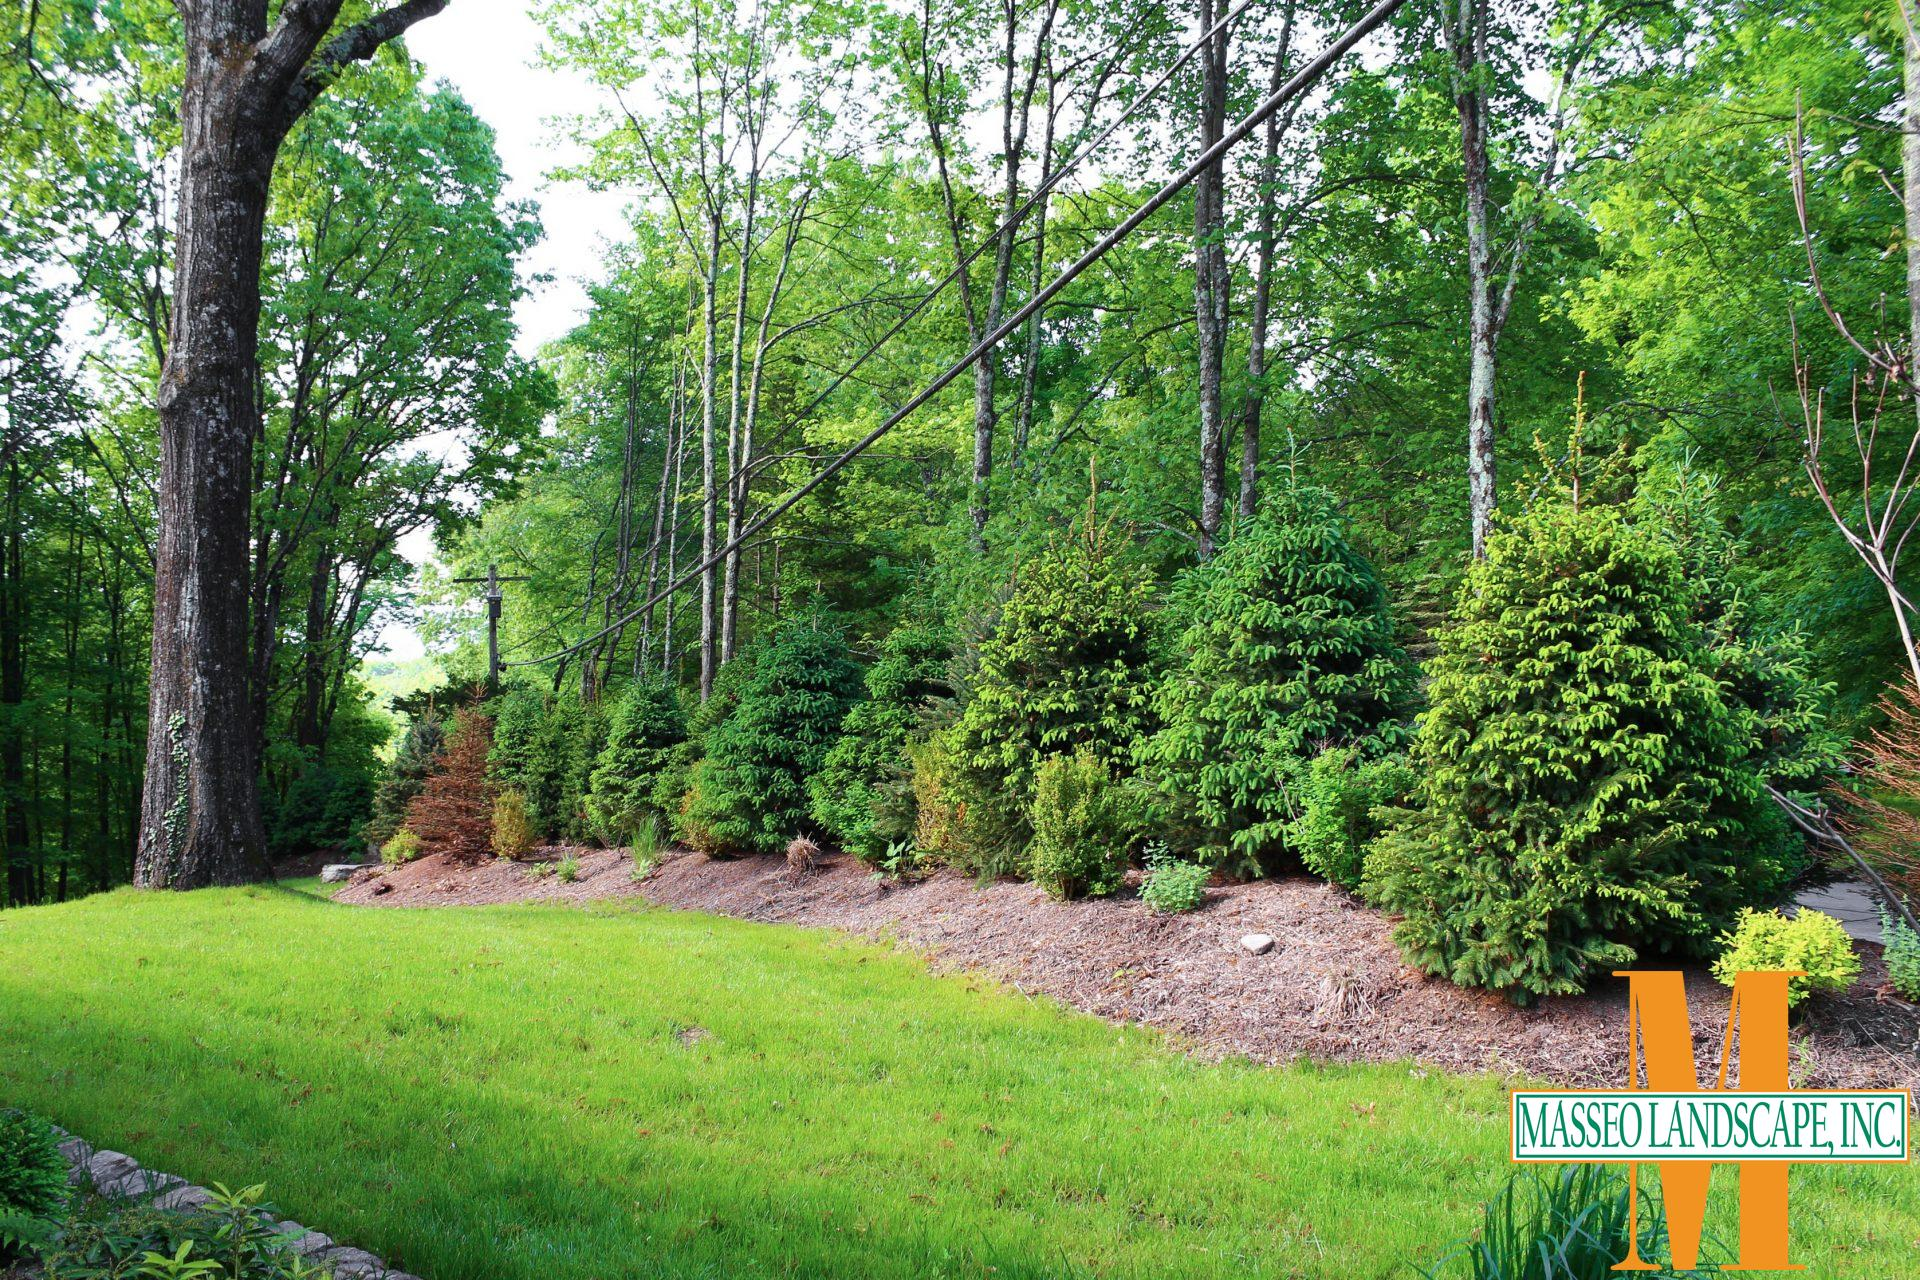 A long privacy planting featuring evergreens and ornamentals blocking the view from the road.